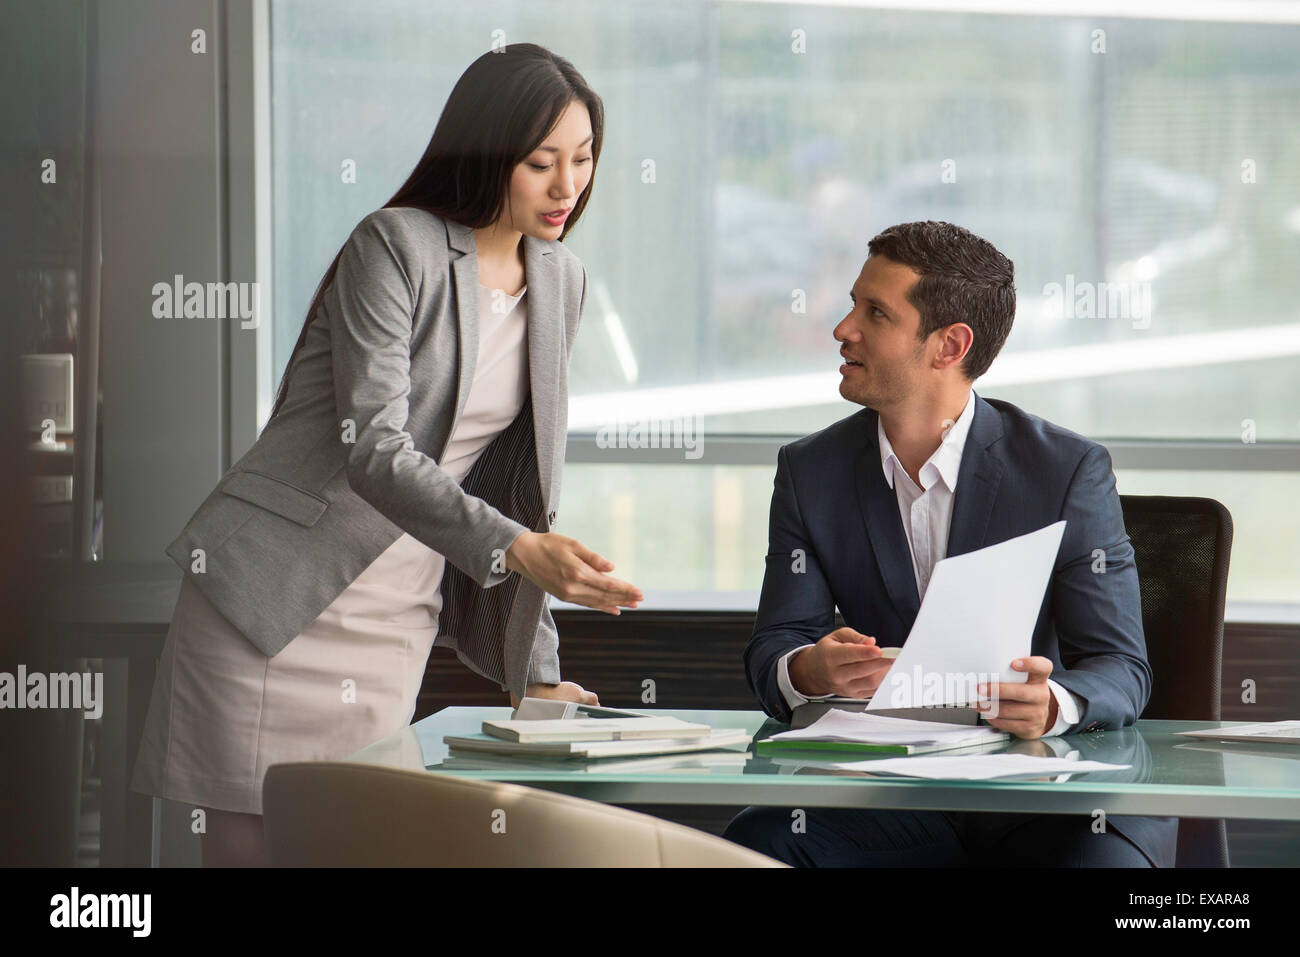 Assistant working with executive - Stock Image